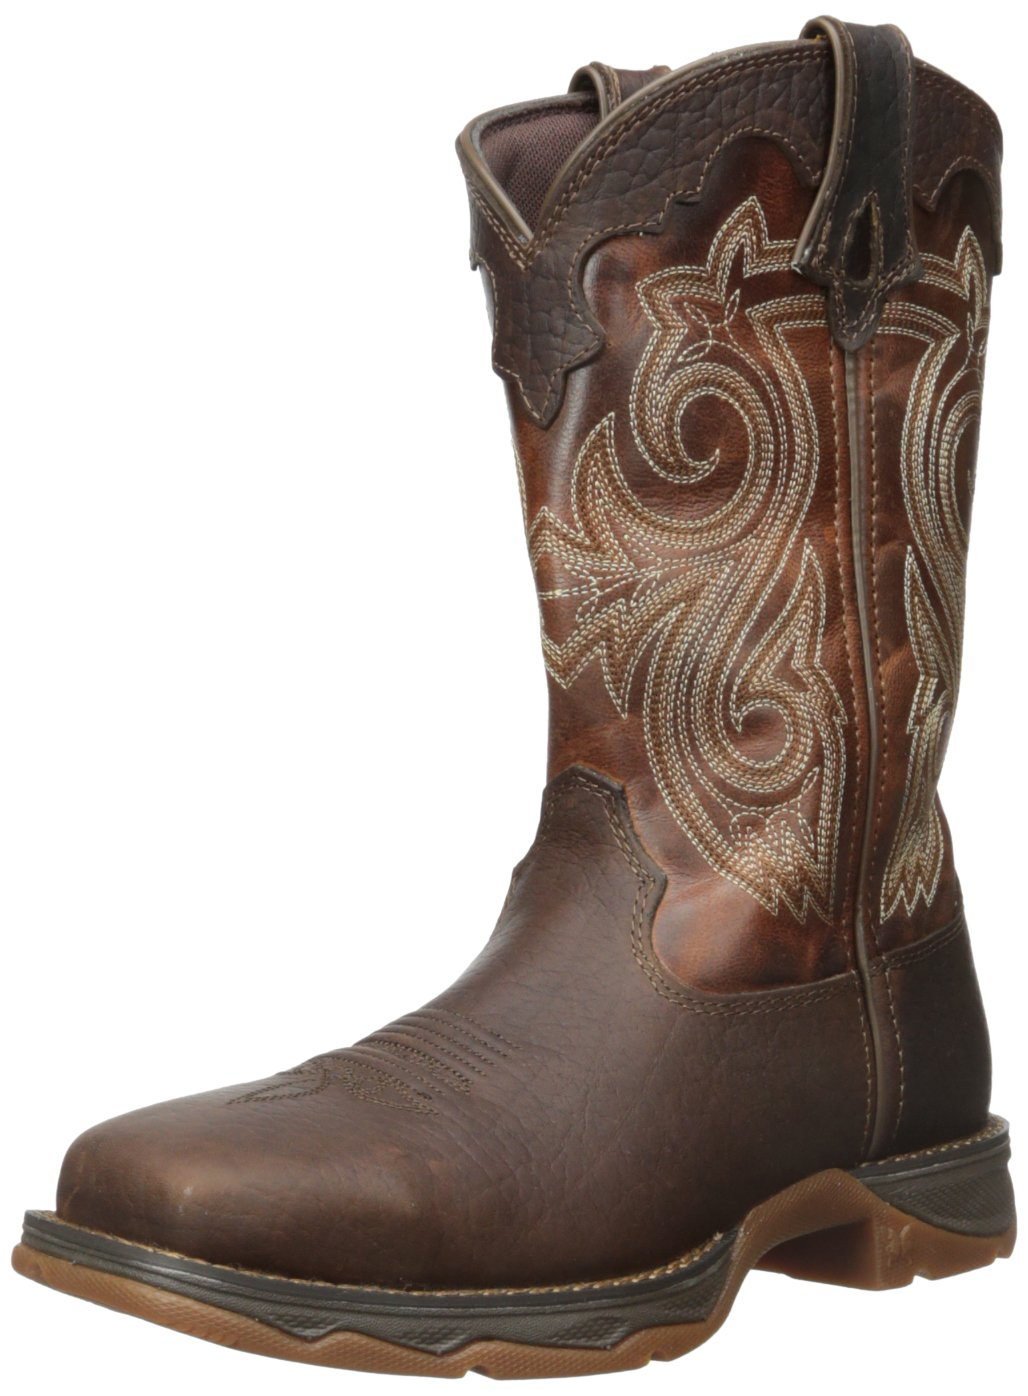 Durango Women's RD3315 Western Boot, Dark Brown/Sunset Brown, 8 M US